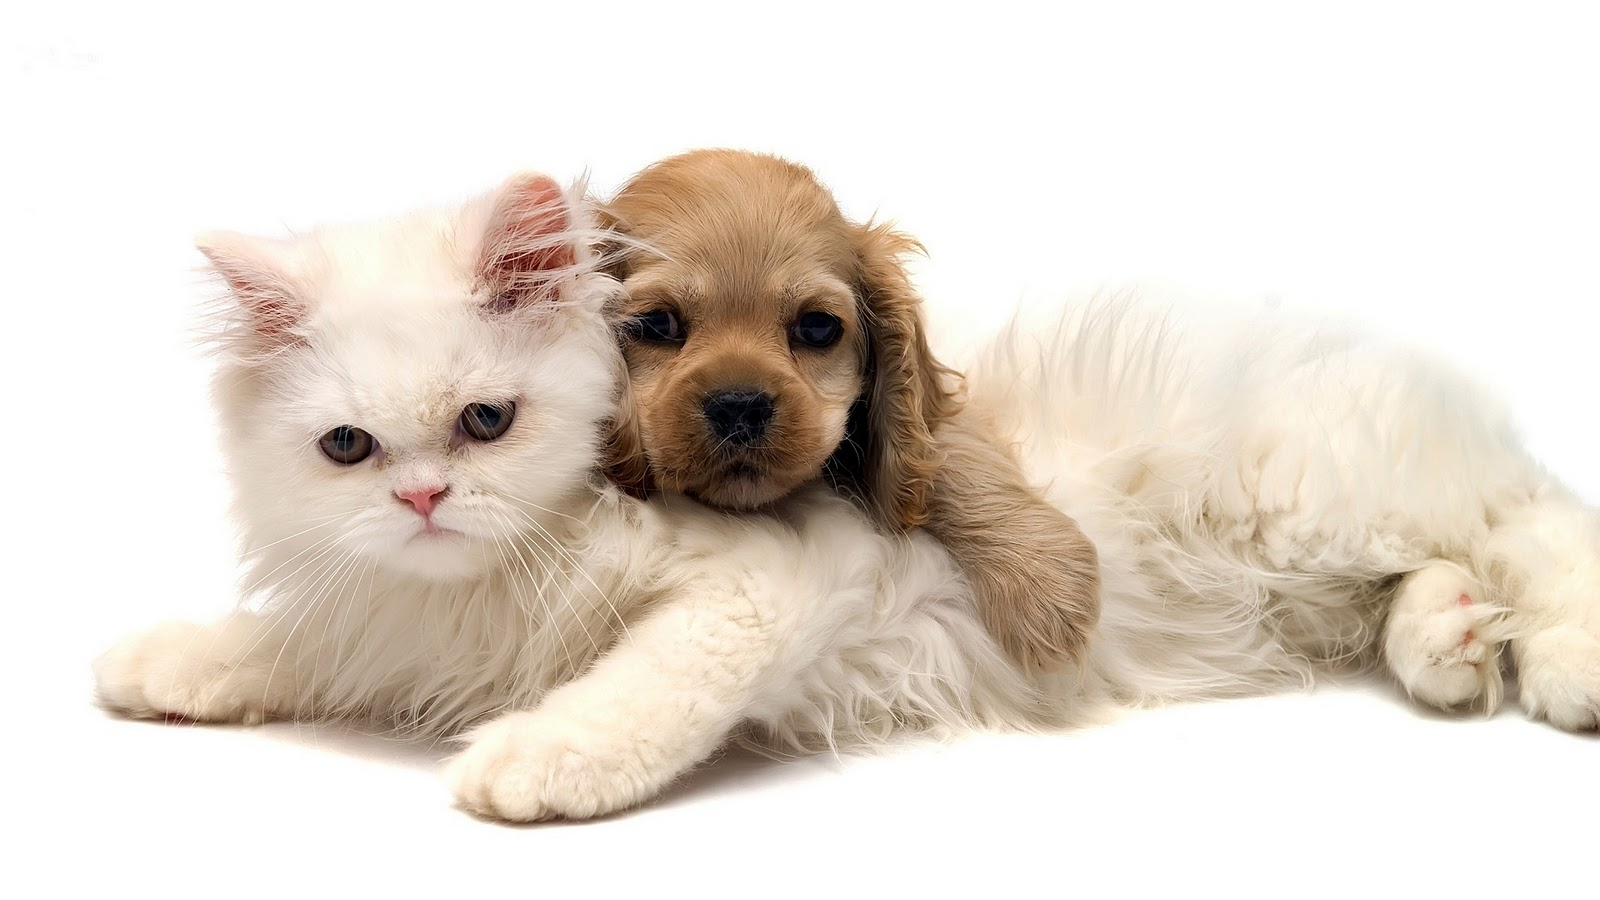 Cute dog and cat friends - photo#28